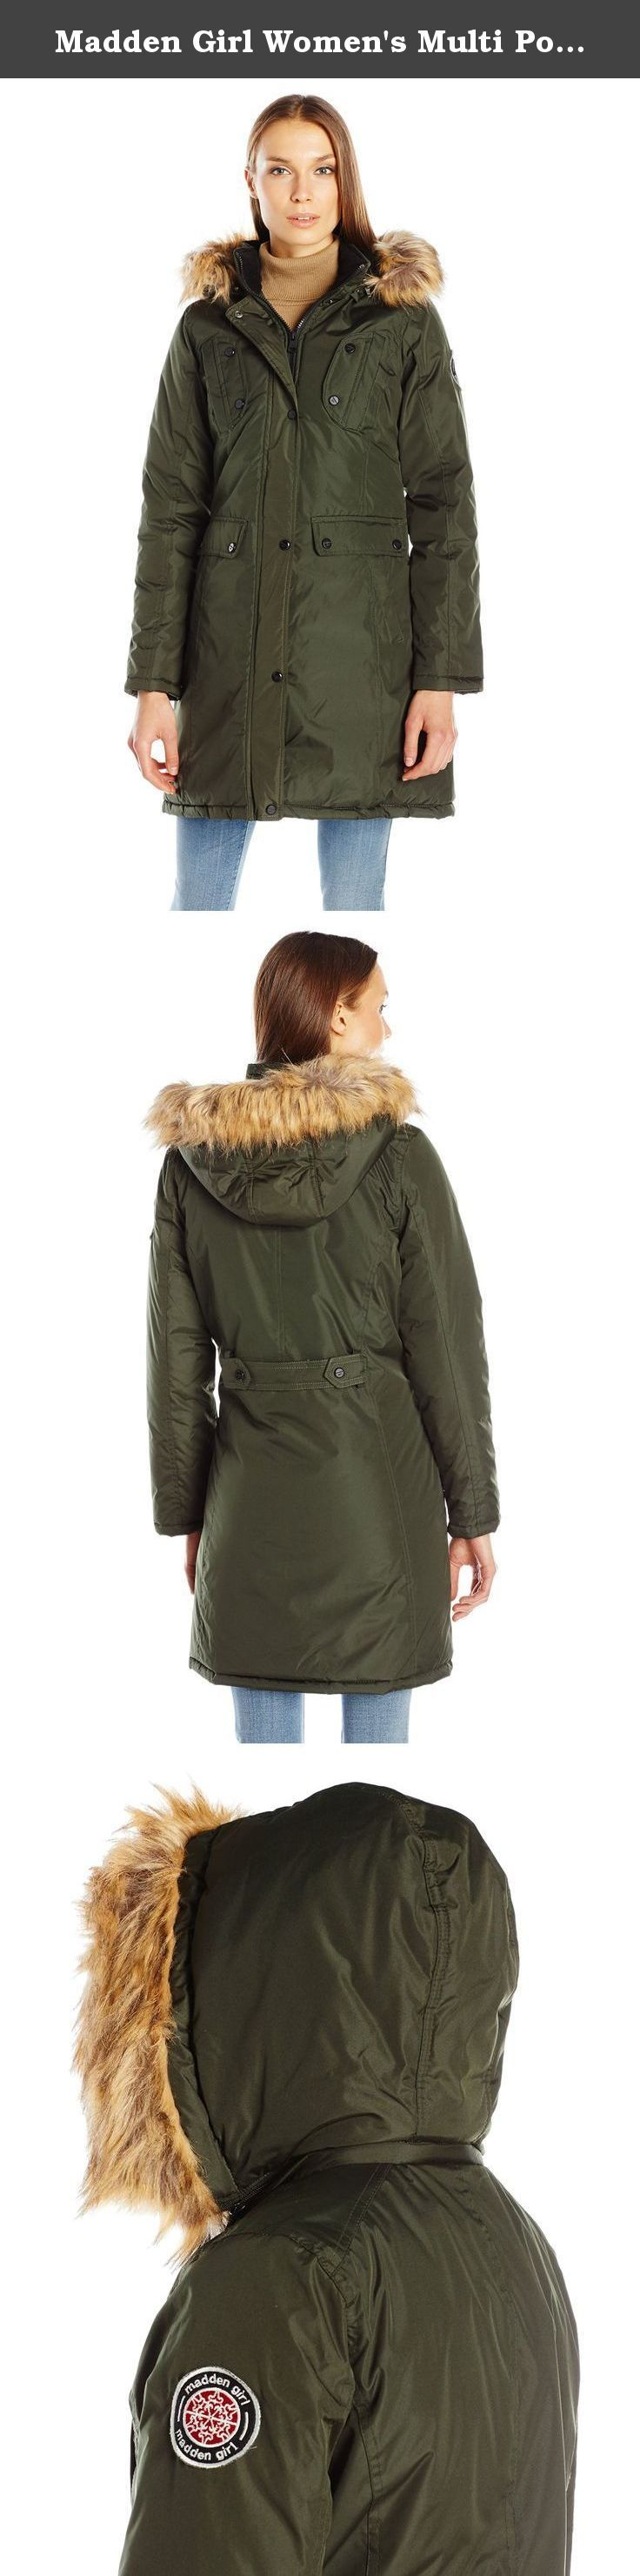 Madden Girl Women's Multi Pocket Insulated Coat, Dark Olive, S. Polyfill insulated coat with detachable faux fur trimmed hood.